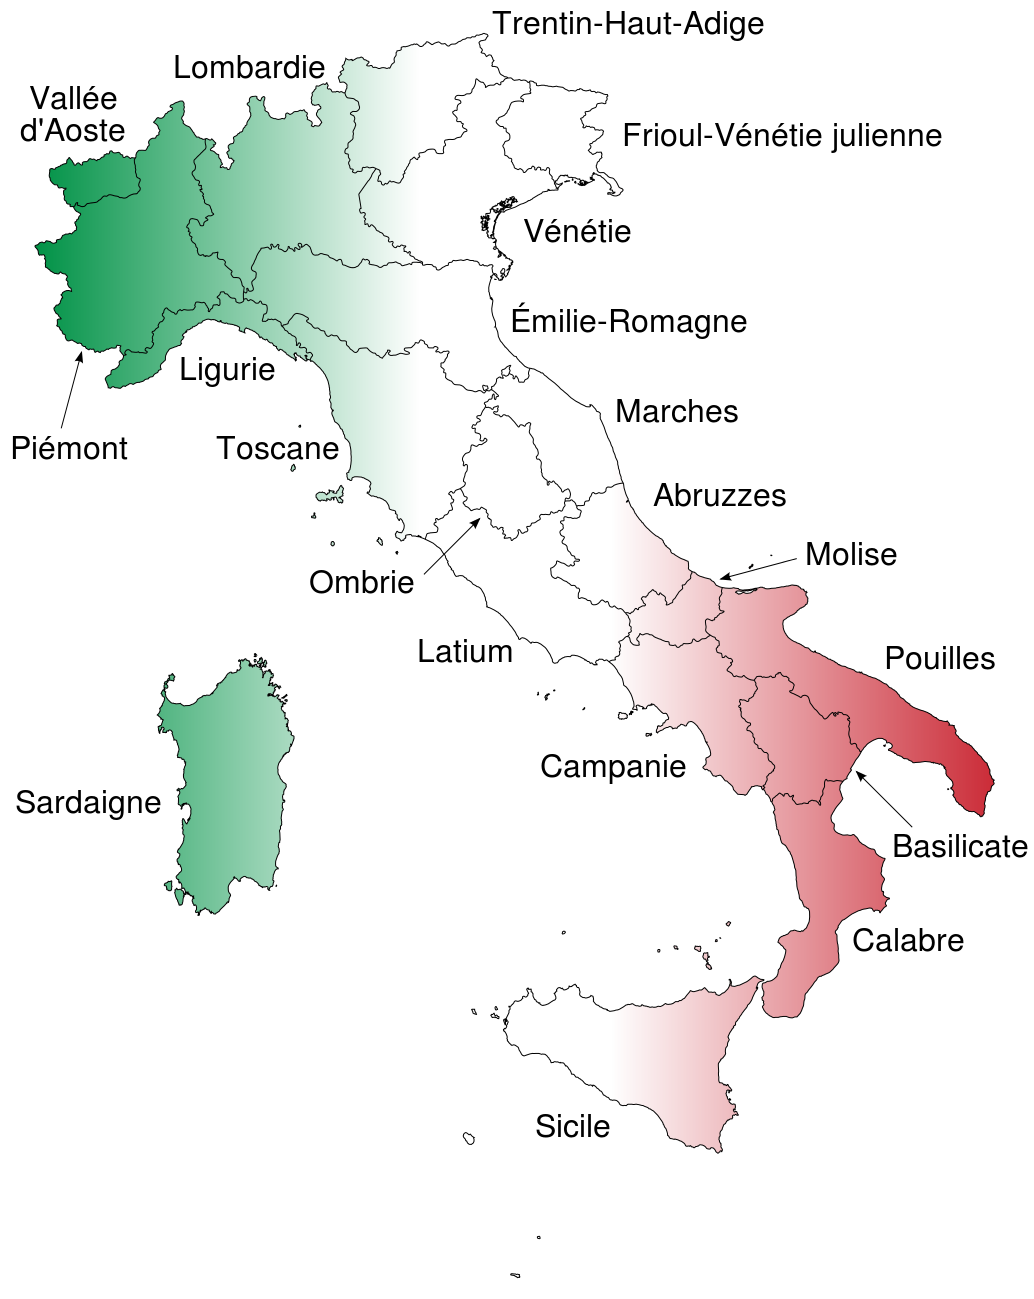 Provincial Map Of Italy.Map Of Regions Of Italy With French Names Maps Regions Of Italy